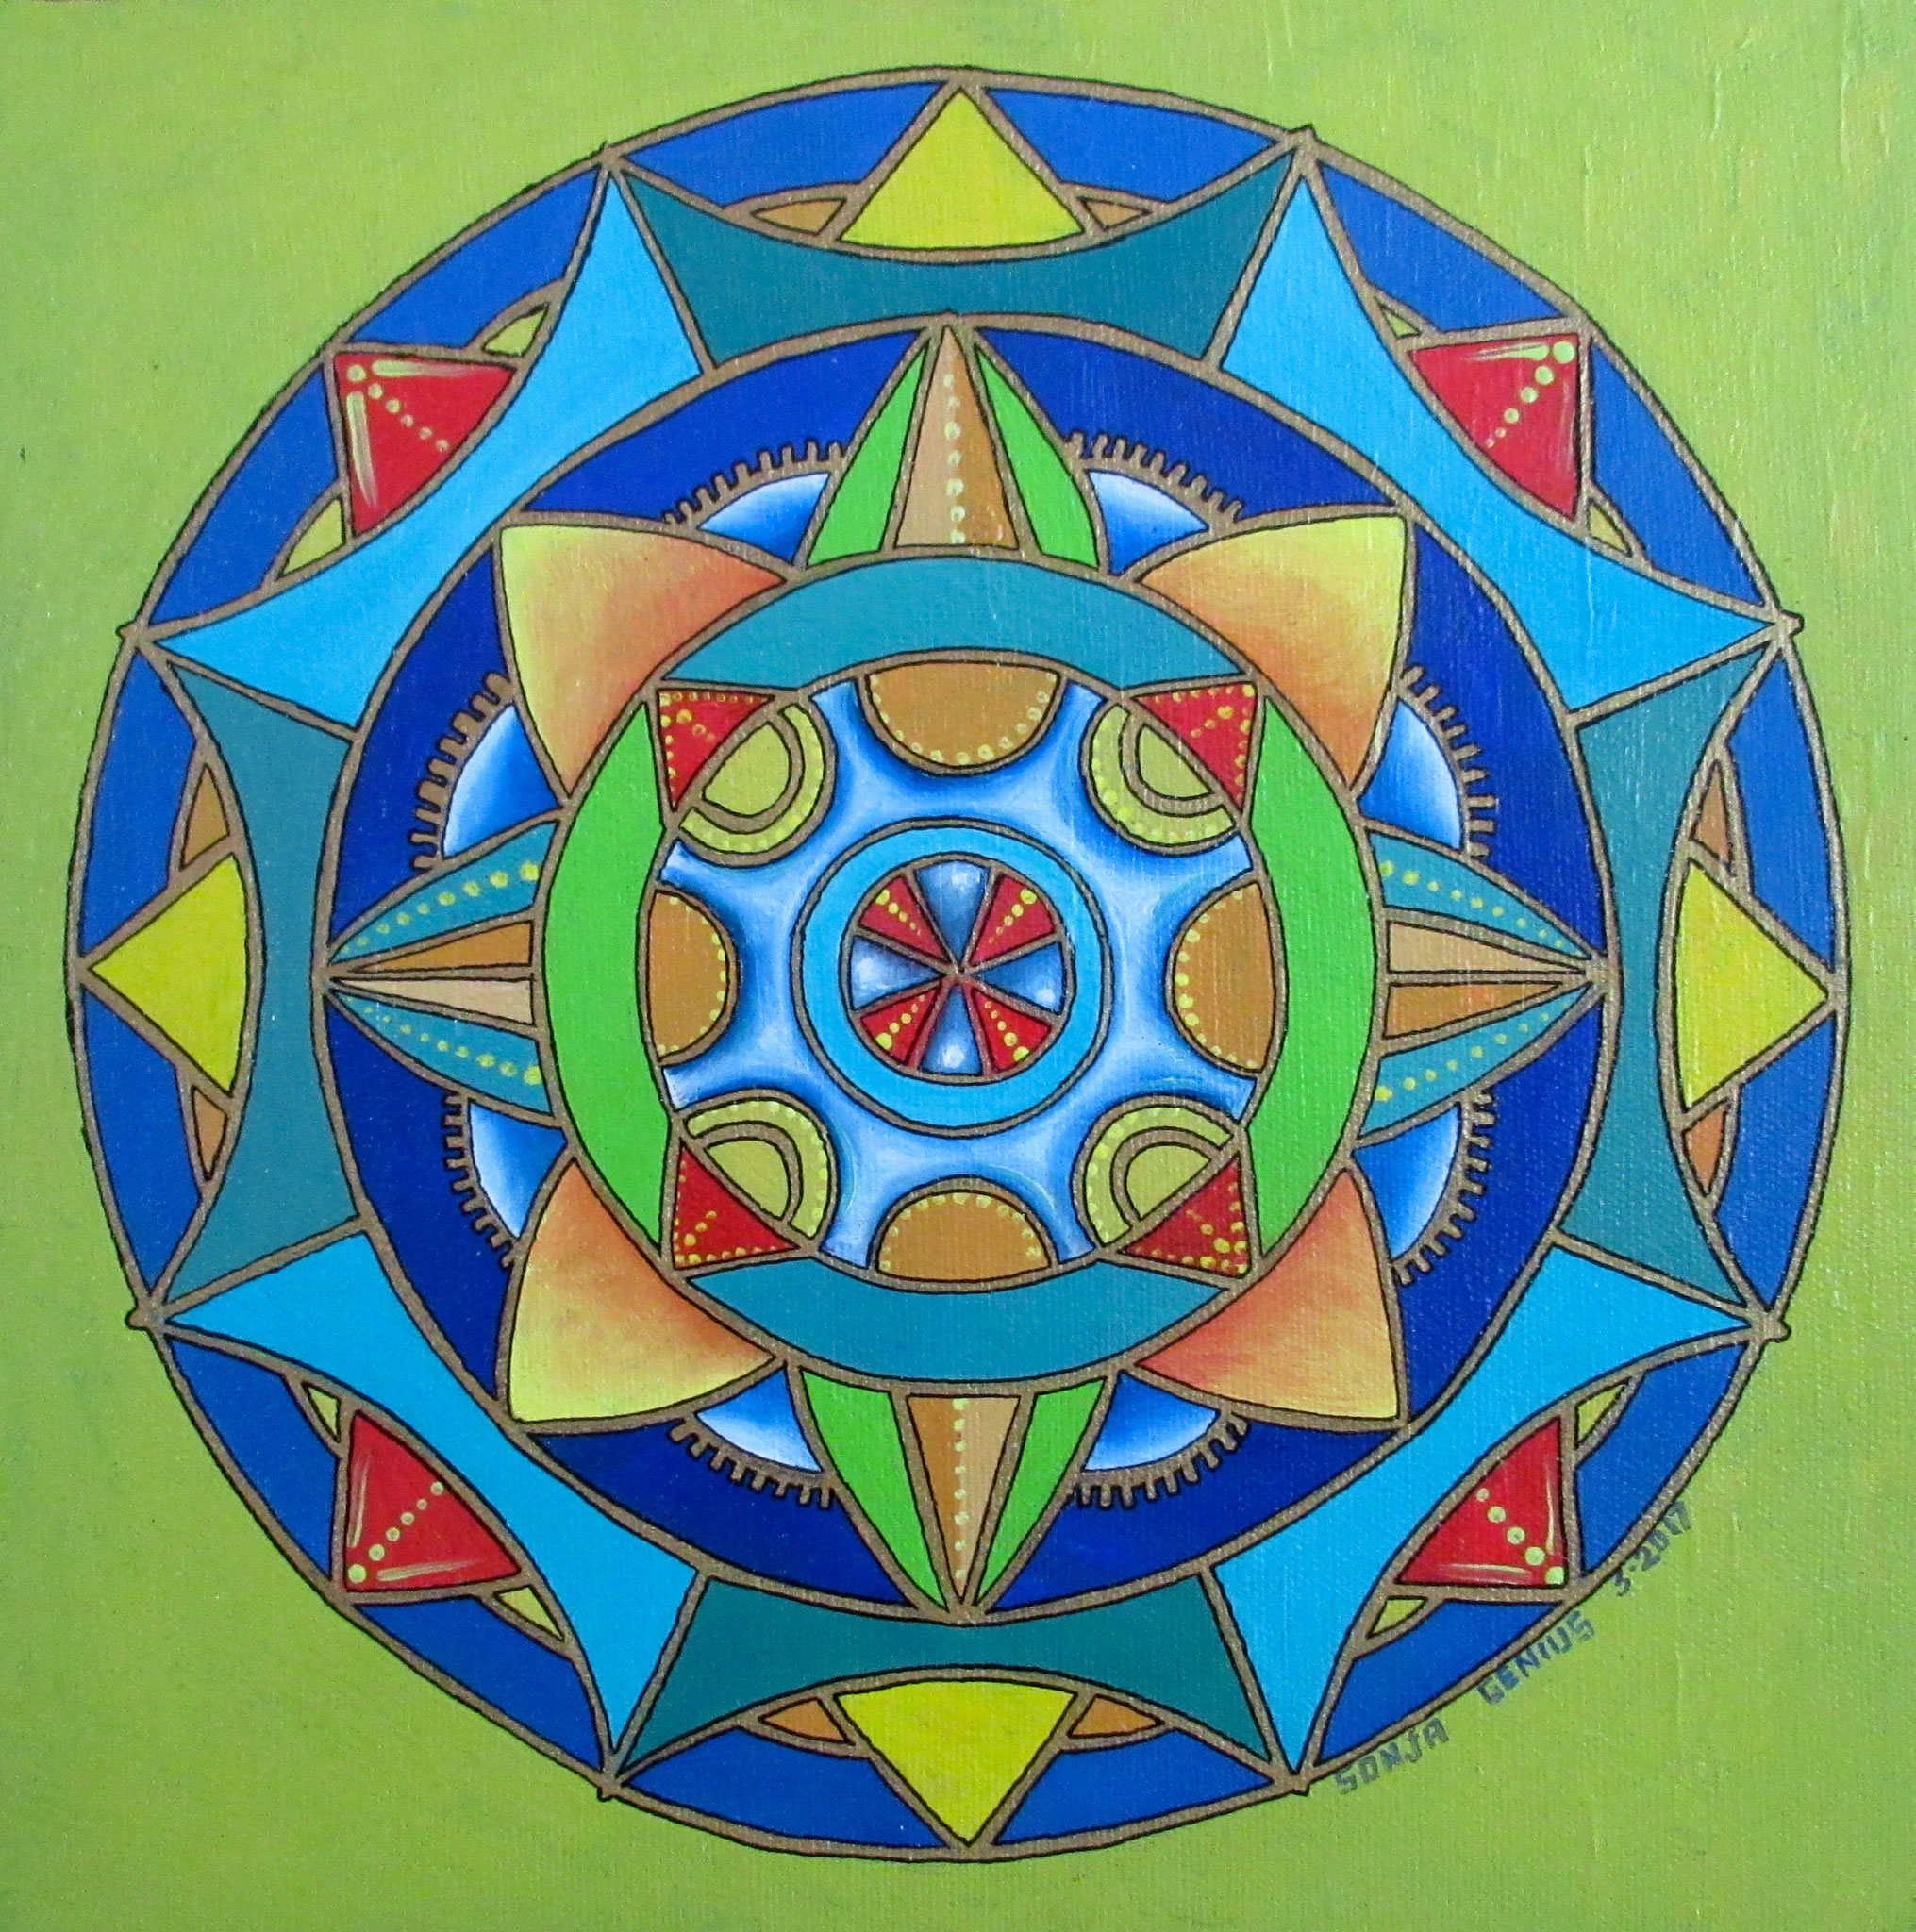 Hex Mandala II, oil on canvas 10x10, March 2017 (1)